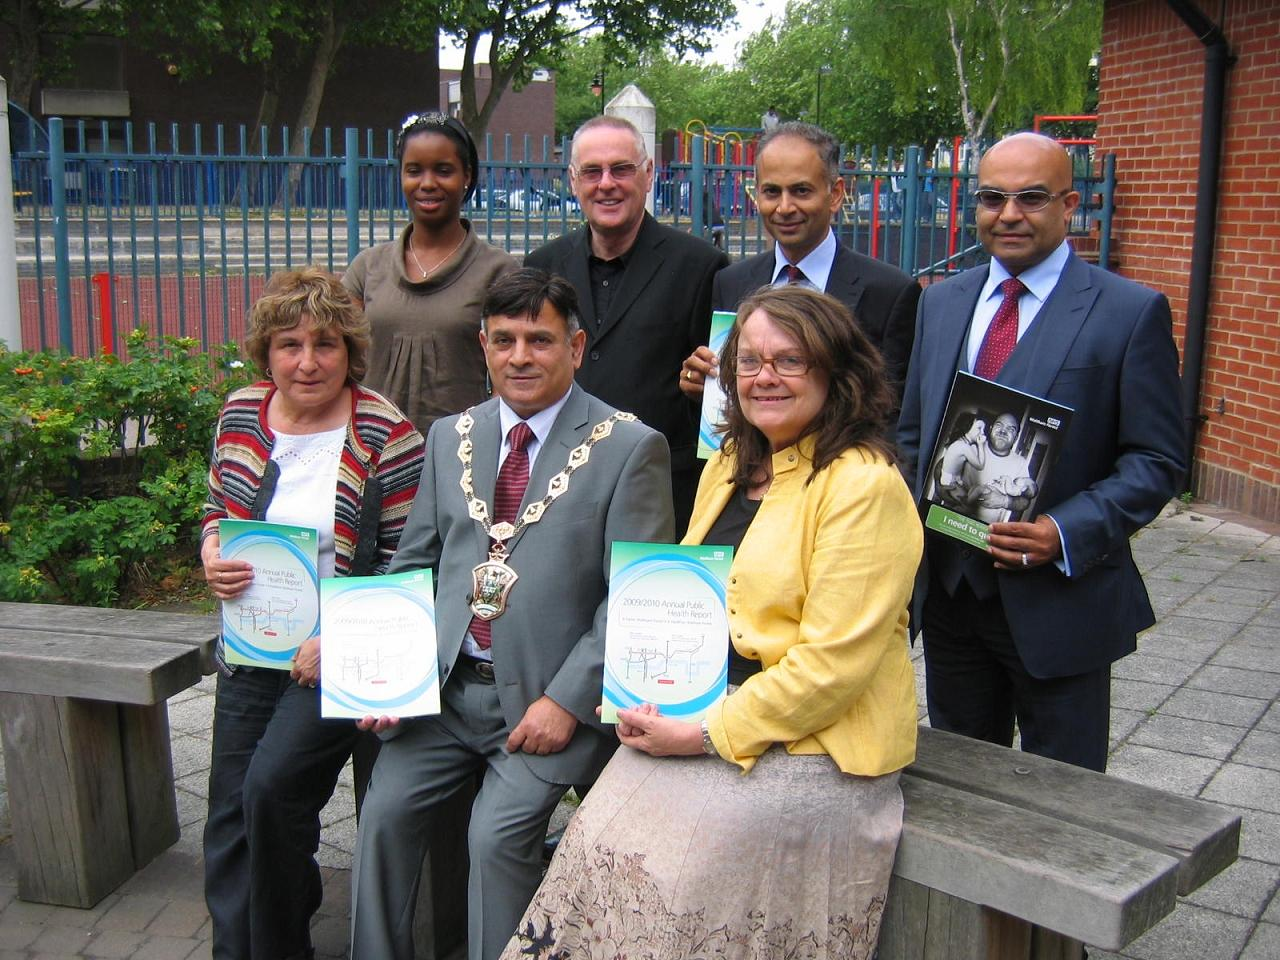 Working together: Councillors and health professionals at the launch of Waltham Forest's annual health report